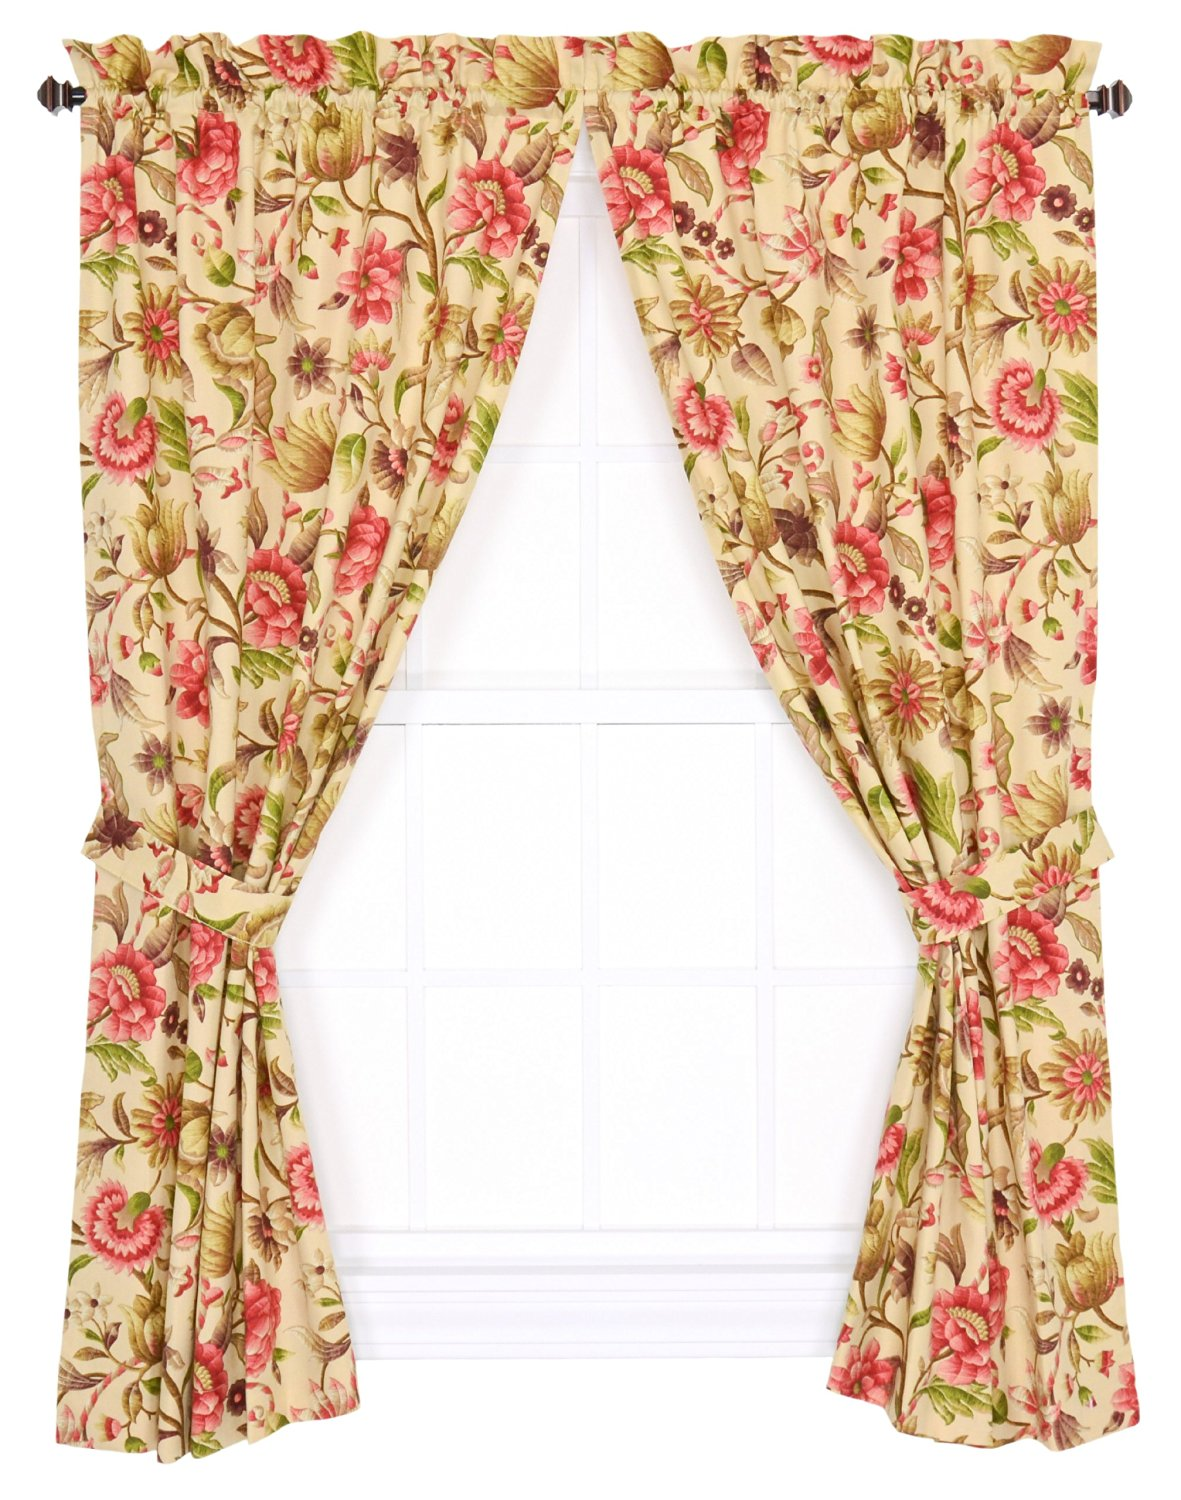 Ellis Curtain Vareen Floral Print Tailored Panel Pair Curtains with Tiebacks, 68 by 84-Inch, Antique